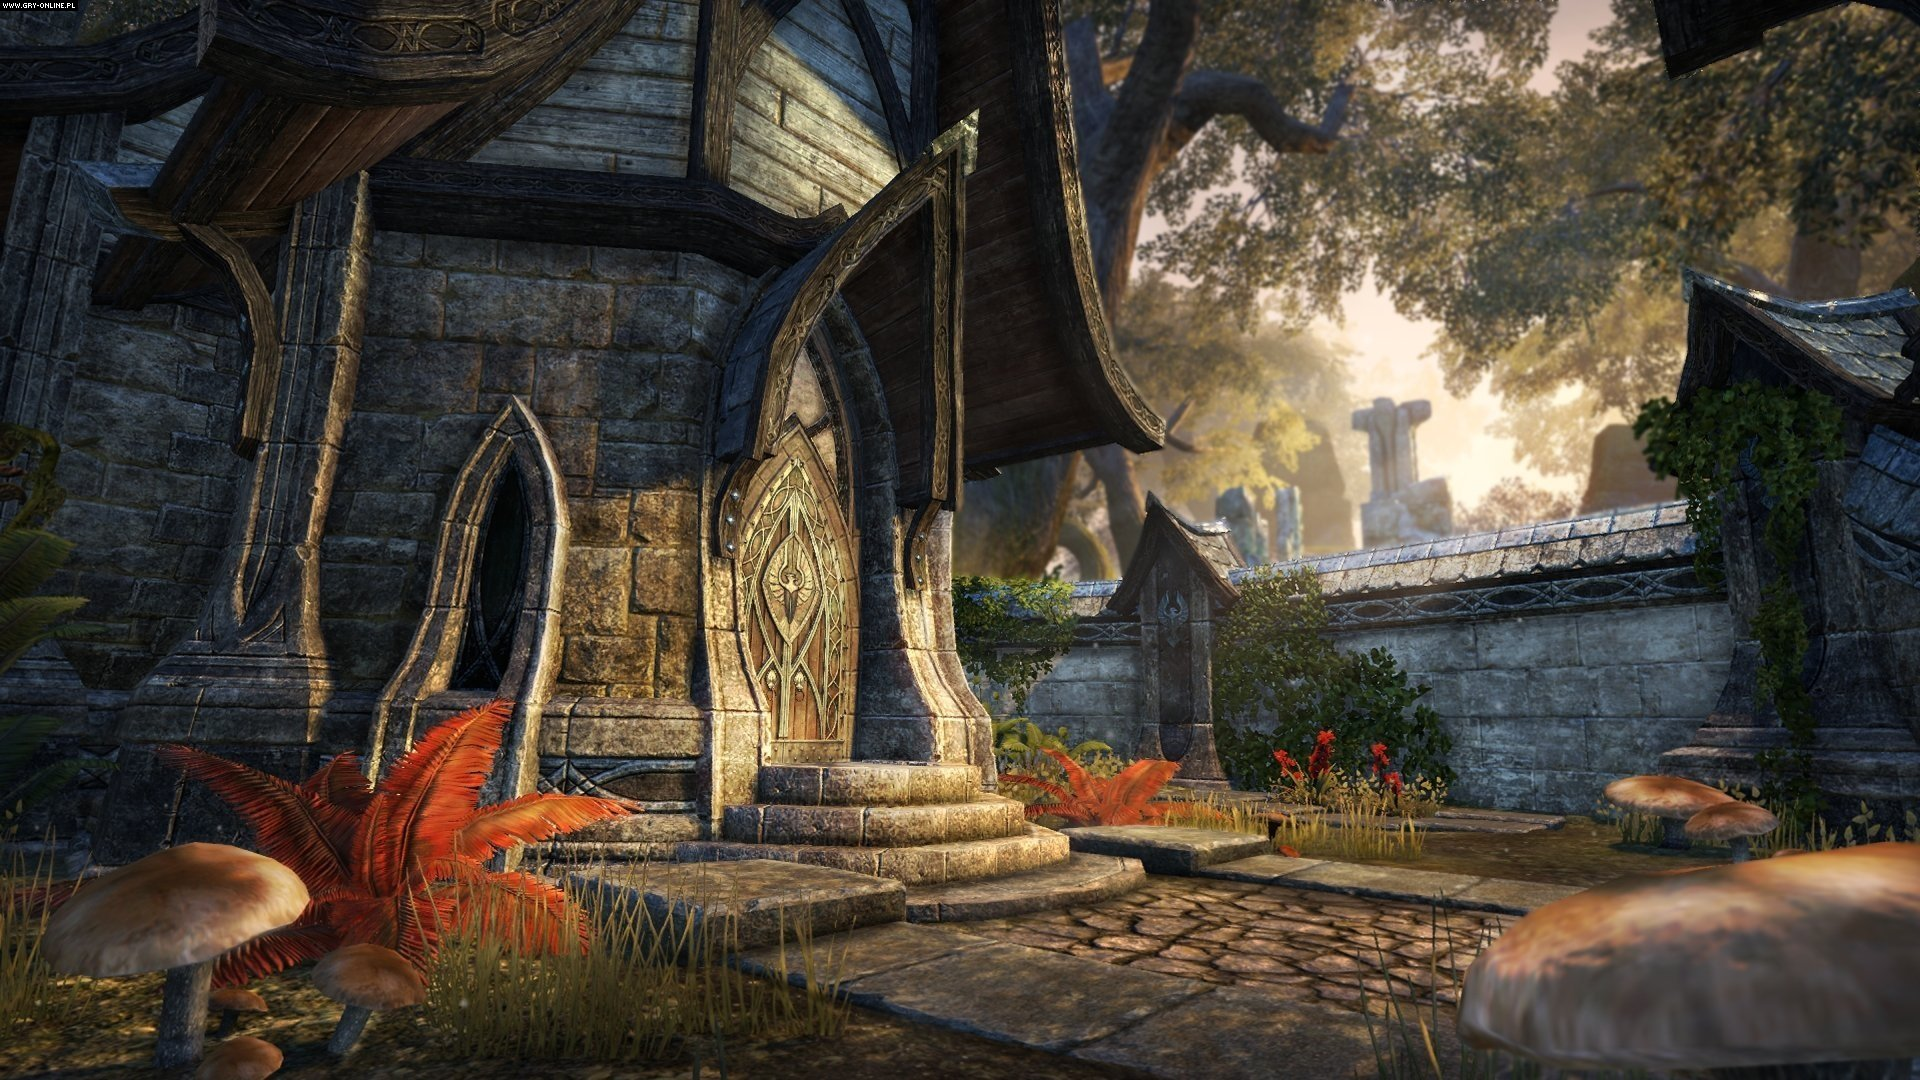 The Elder Scrolls Online: Tamriel Unlimited PC, PS4, XONE Gry Screen 6/104, ZeniMax Online Studios, Bethesda Softworks